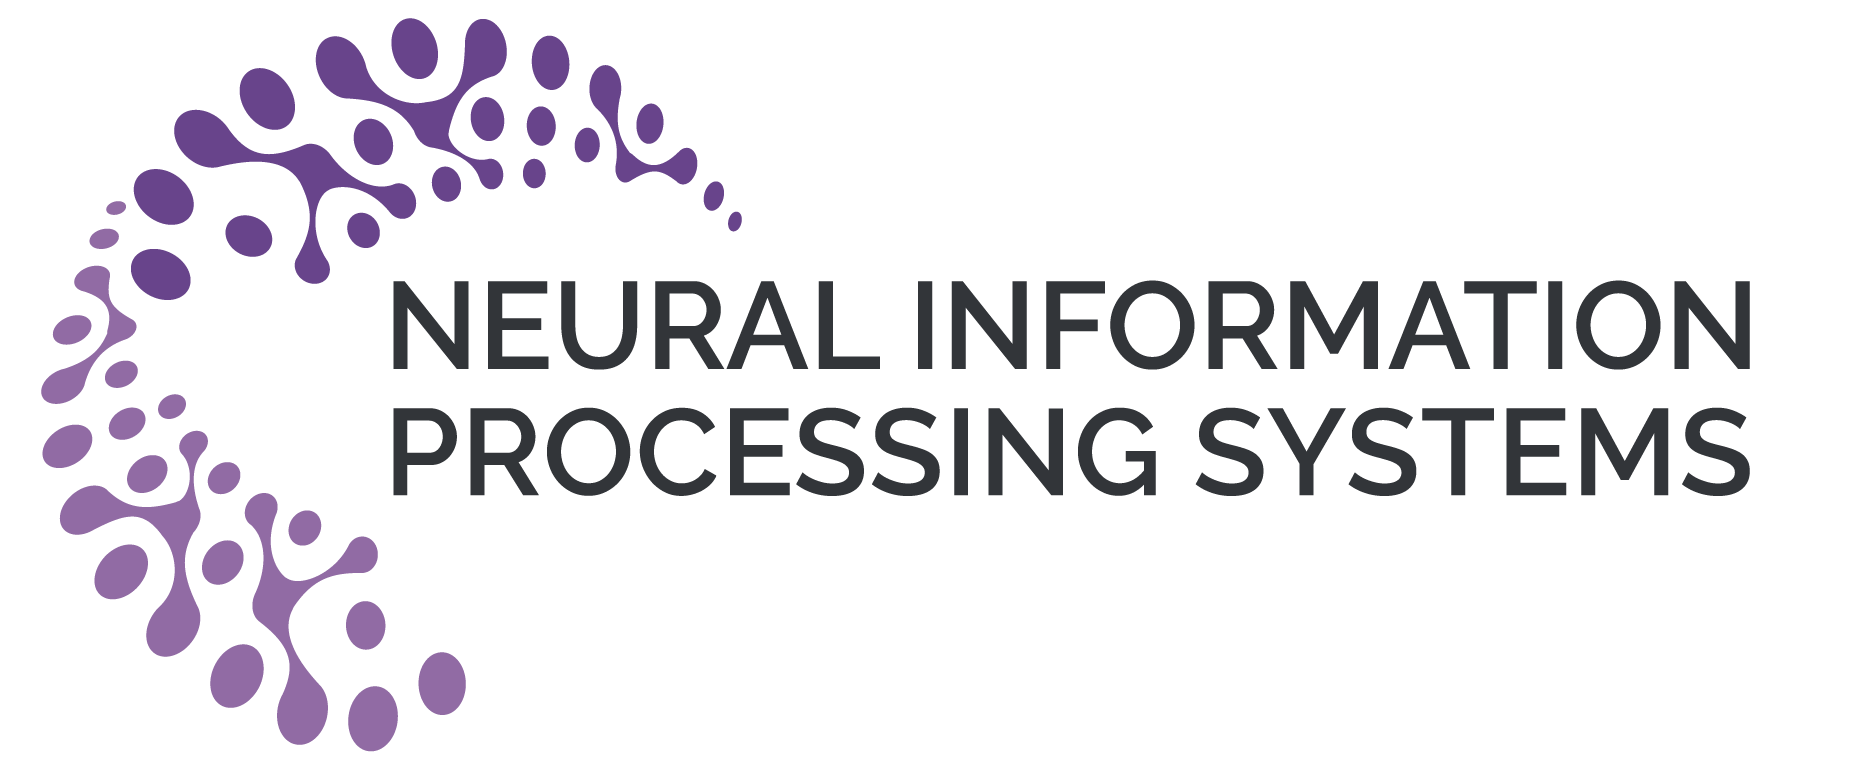 The Conference and Workshop on Neural Information Processing Systems (NeurIPS) 2020.